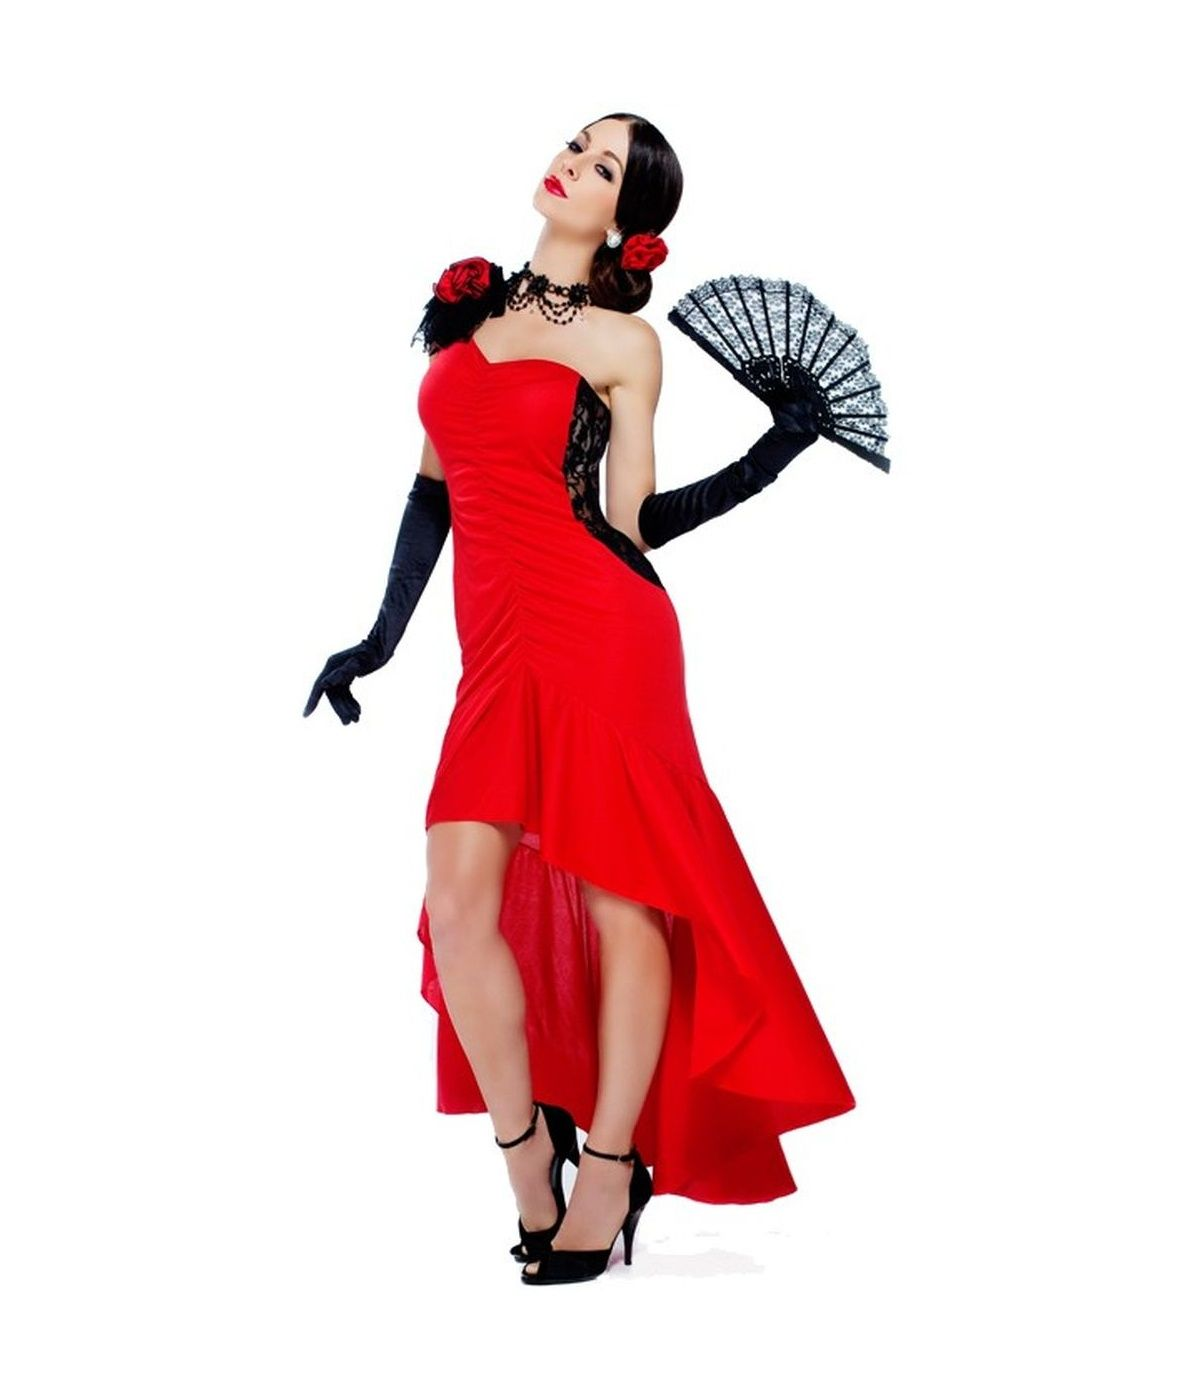 Sizzling senorita womens spanish dancer costume 2015 costumes sizzling senorita womens spanish dancer costume solutioingenieria Images